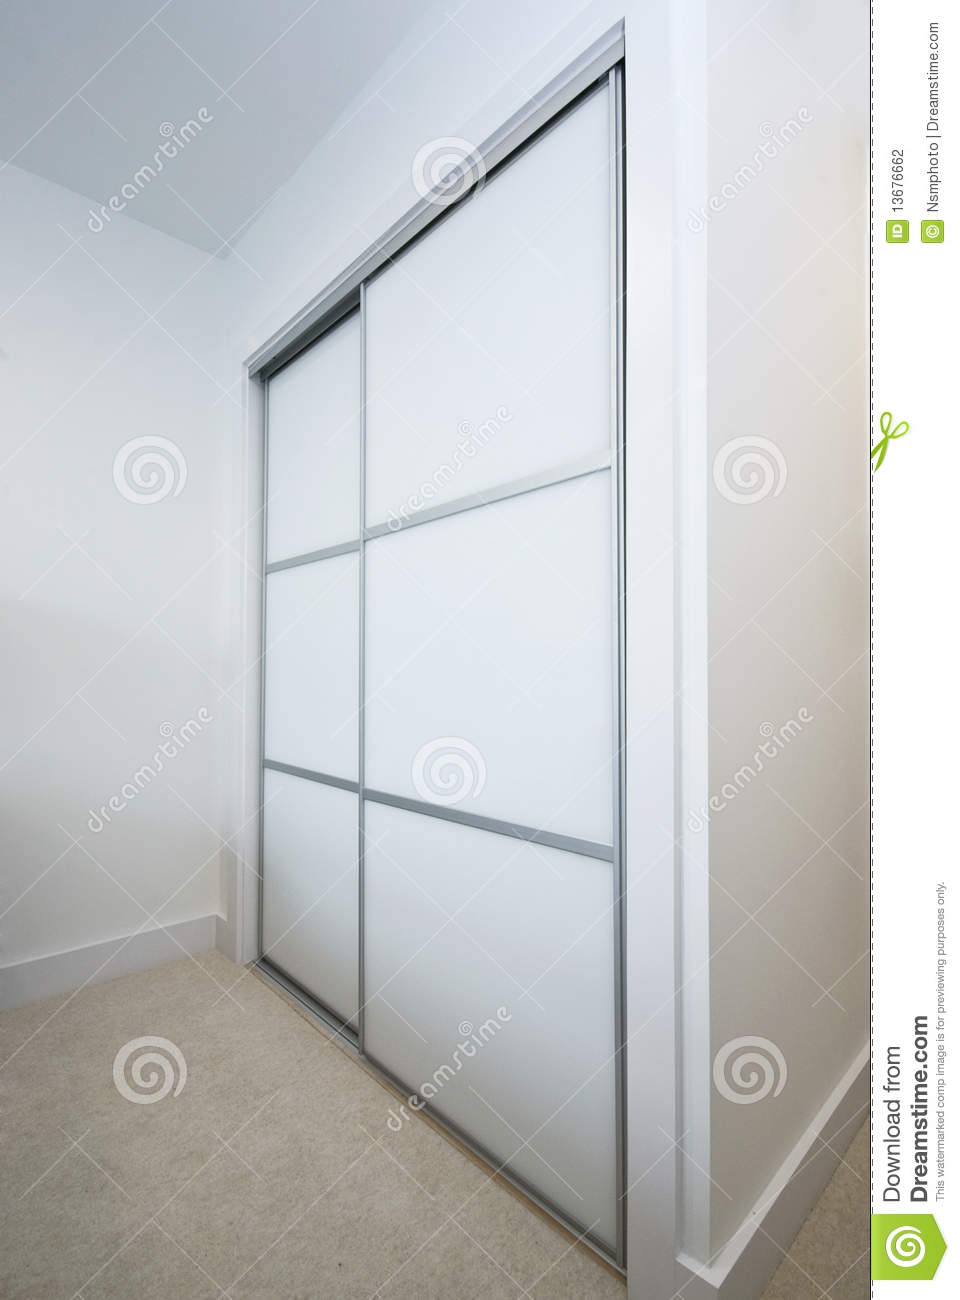 large built in wardrobe - Built In Wardrobe